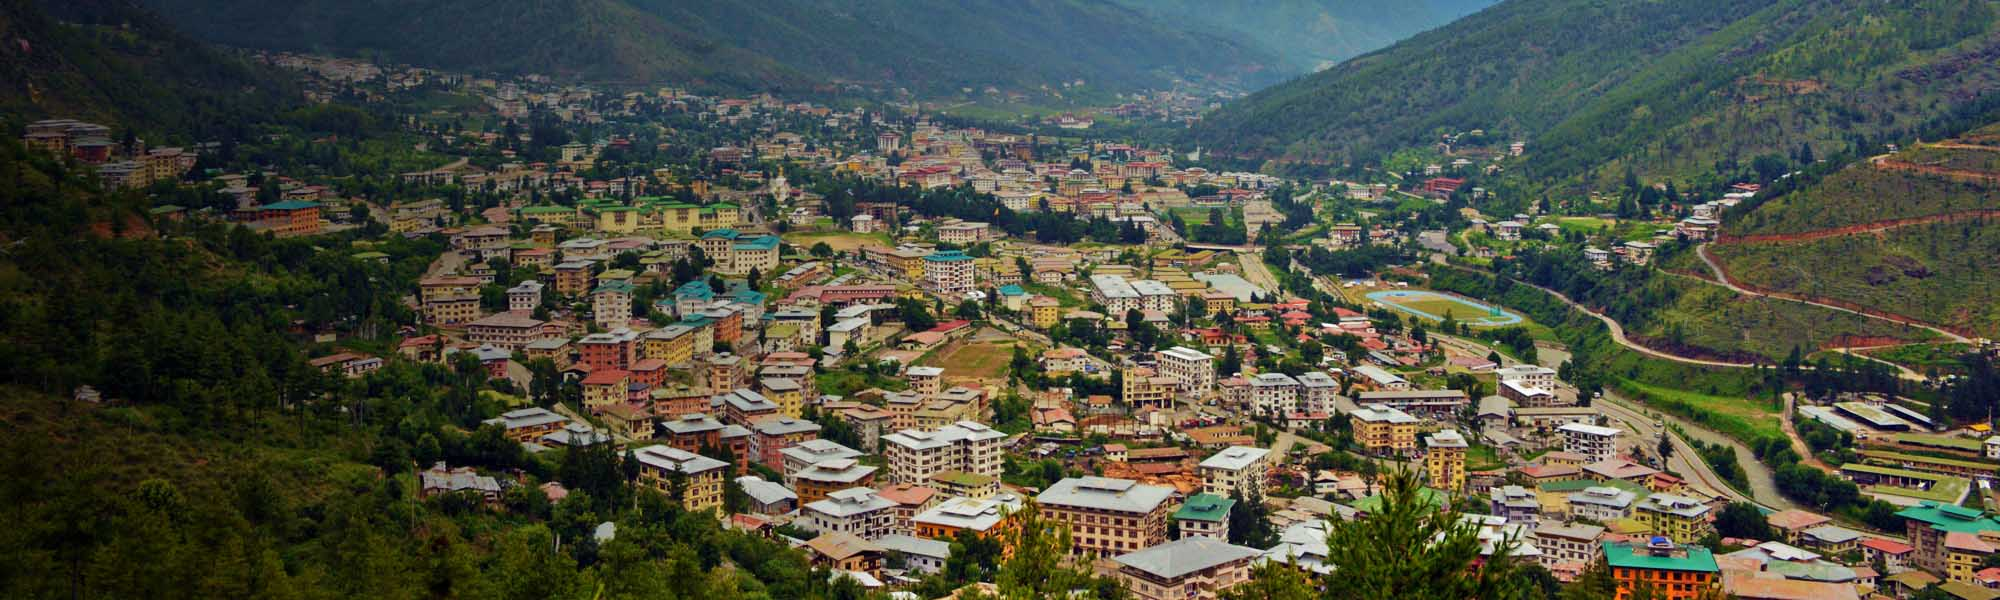 Thimphu Capital of Bhutan